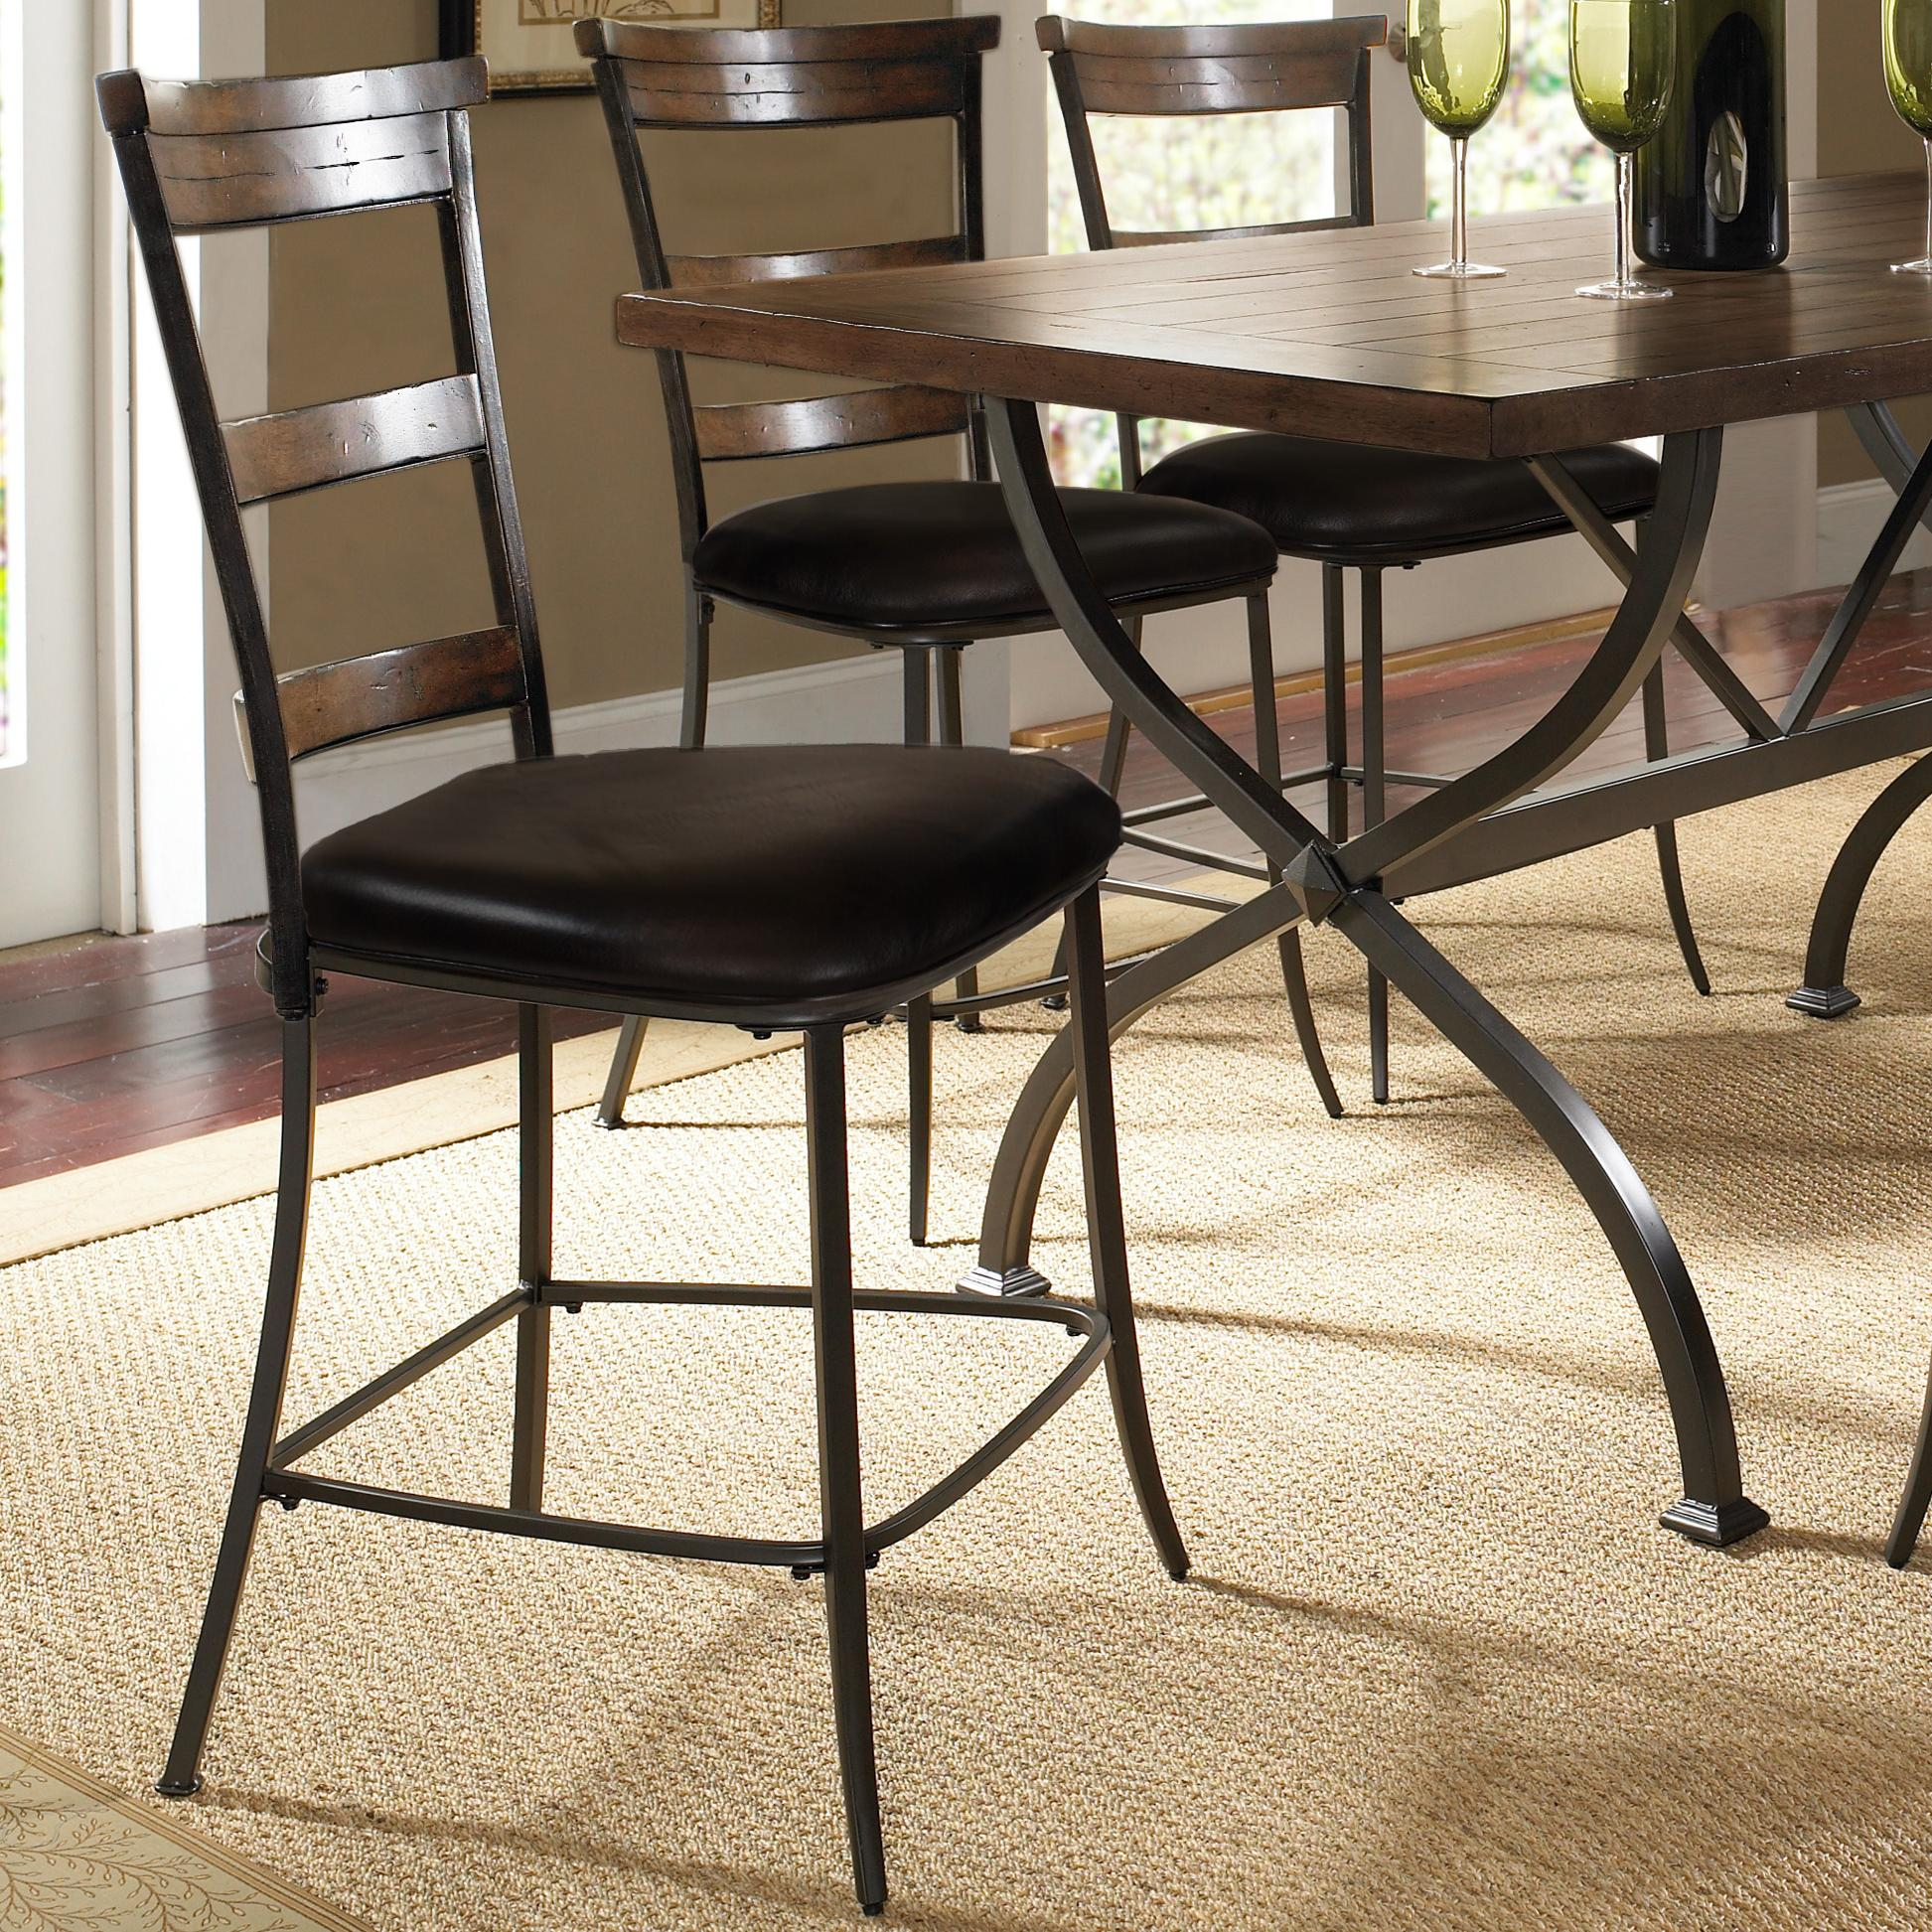 Hillsdale Cameron Ladder Back Stool - Item Number: 4671-825